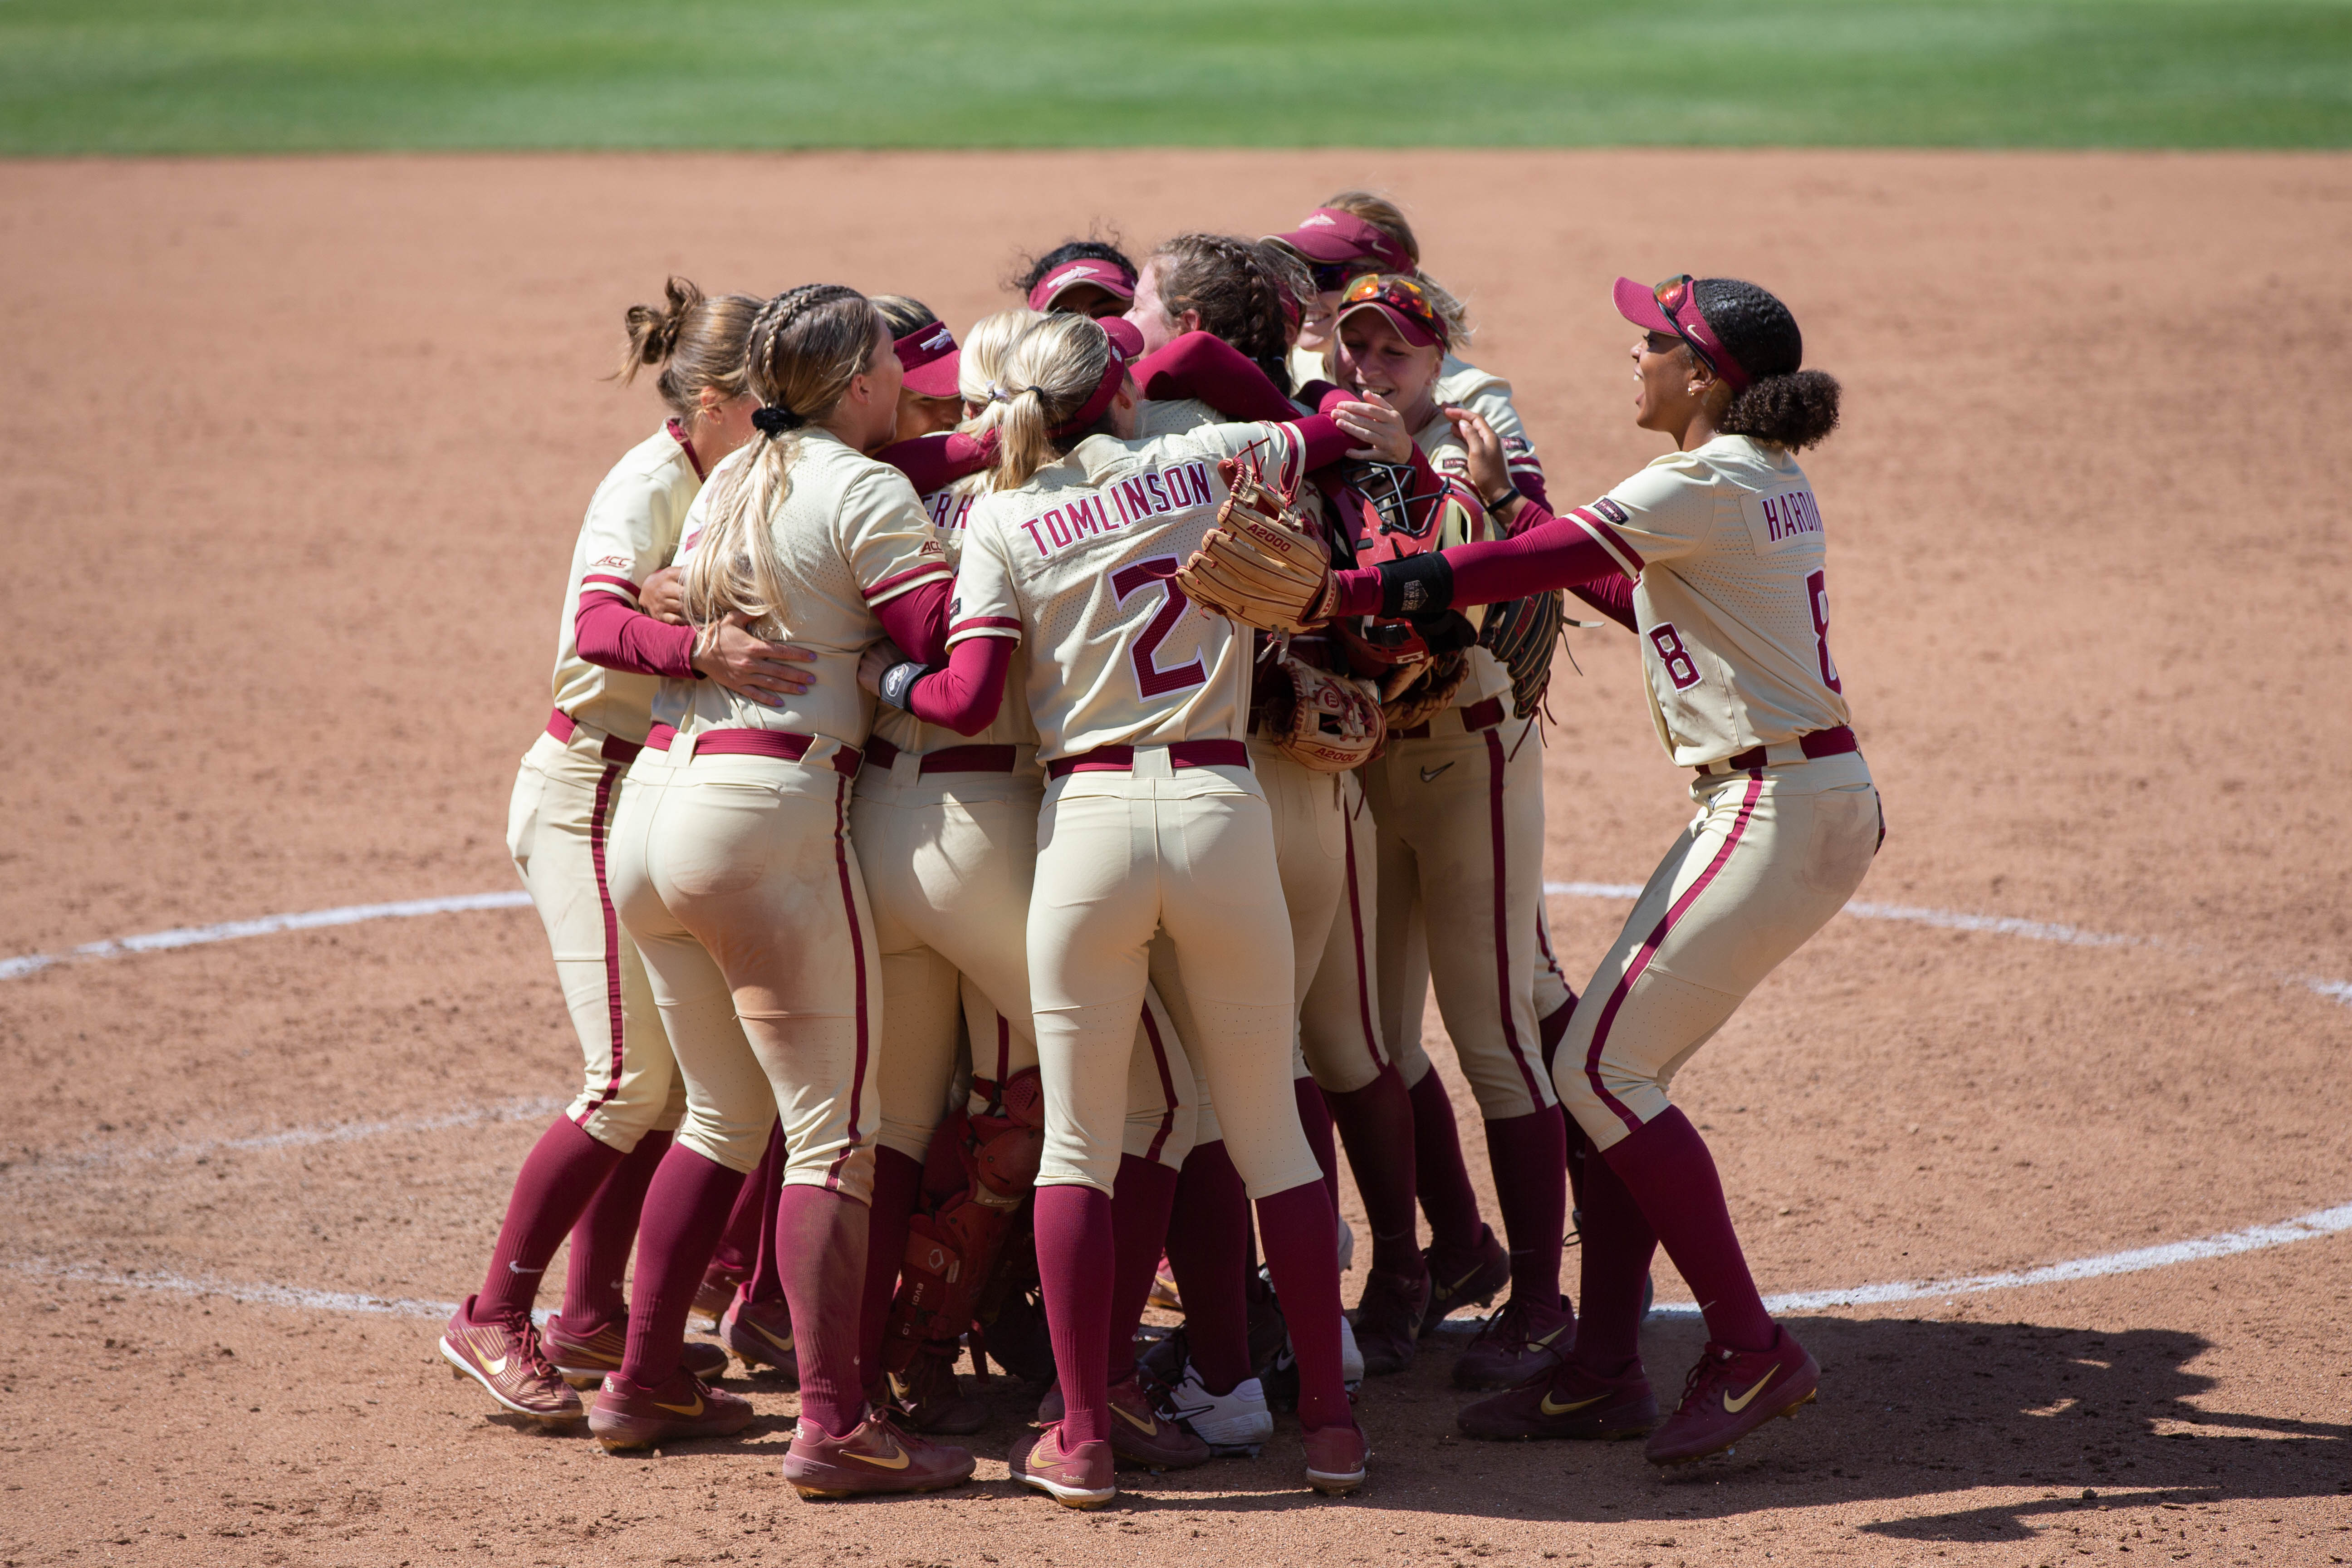 Florida State softball's miraculous run continues to WCWS finals with another win against Alabama